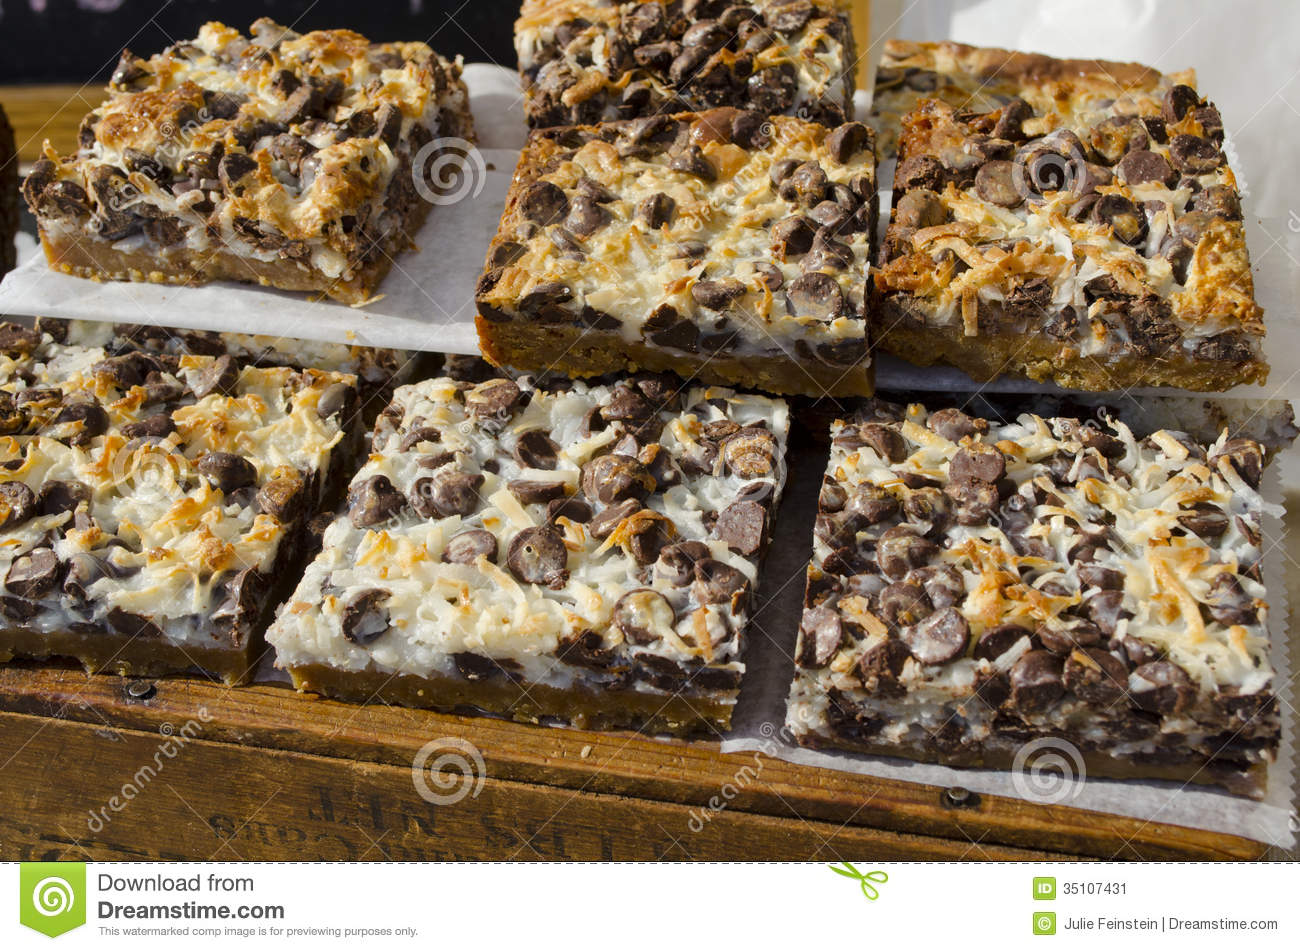 Bar Cookies Stock Image  Image Of Dessert, Caloric, Chips